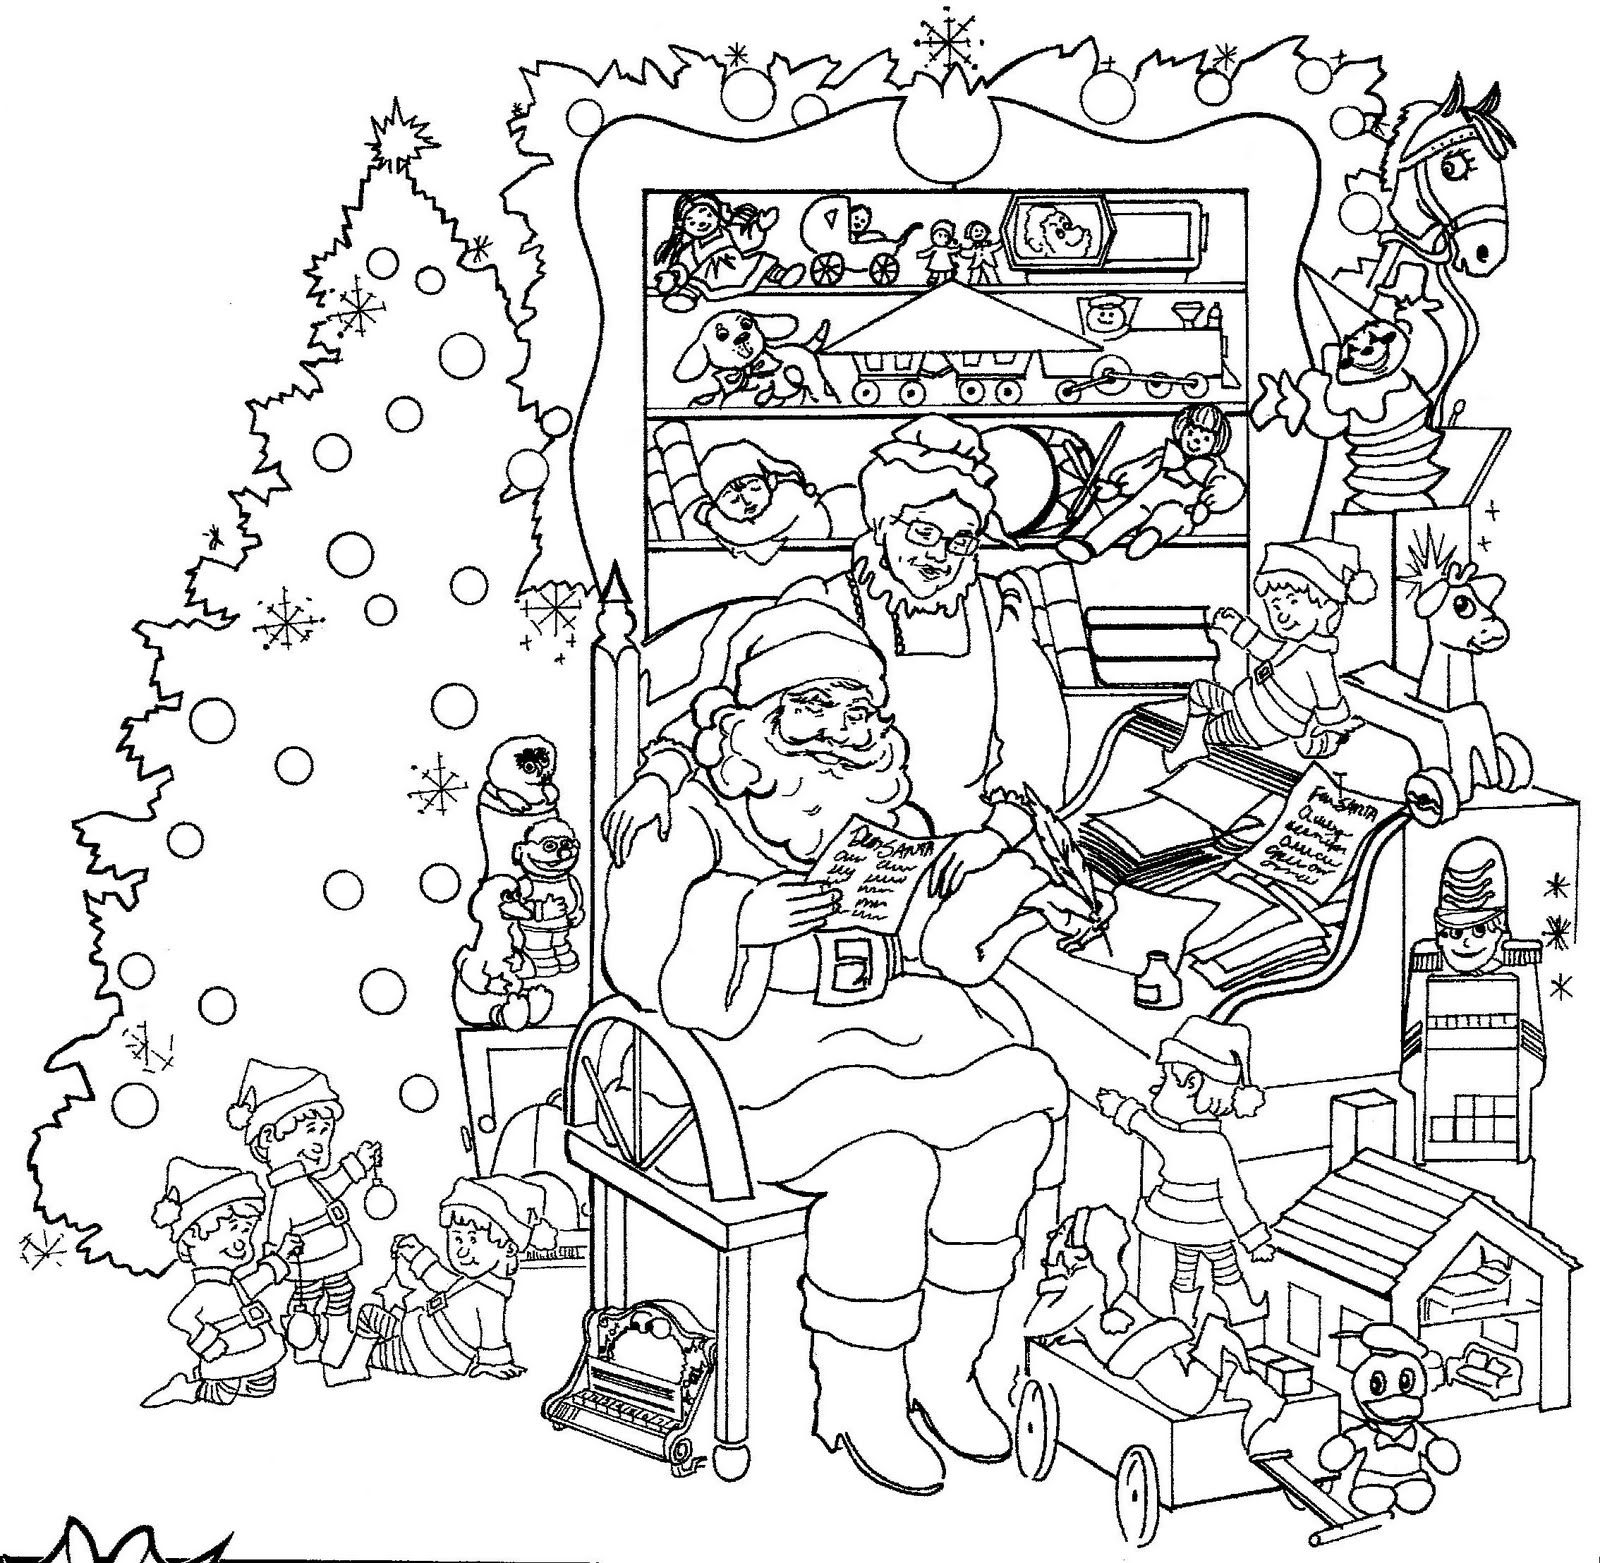 Detailed colouring pages for adults - Detailed Christmas Coloring Pages